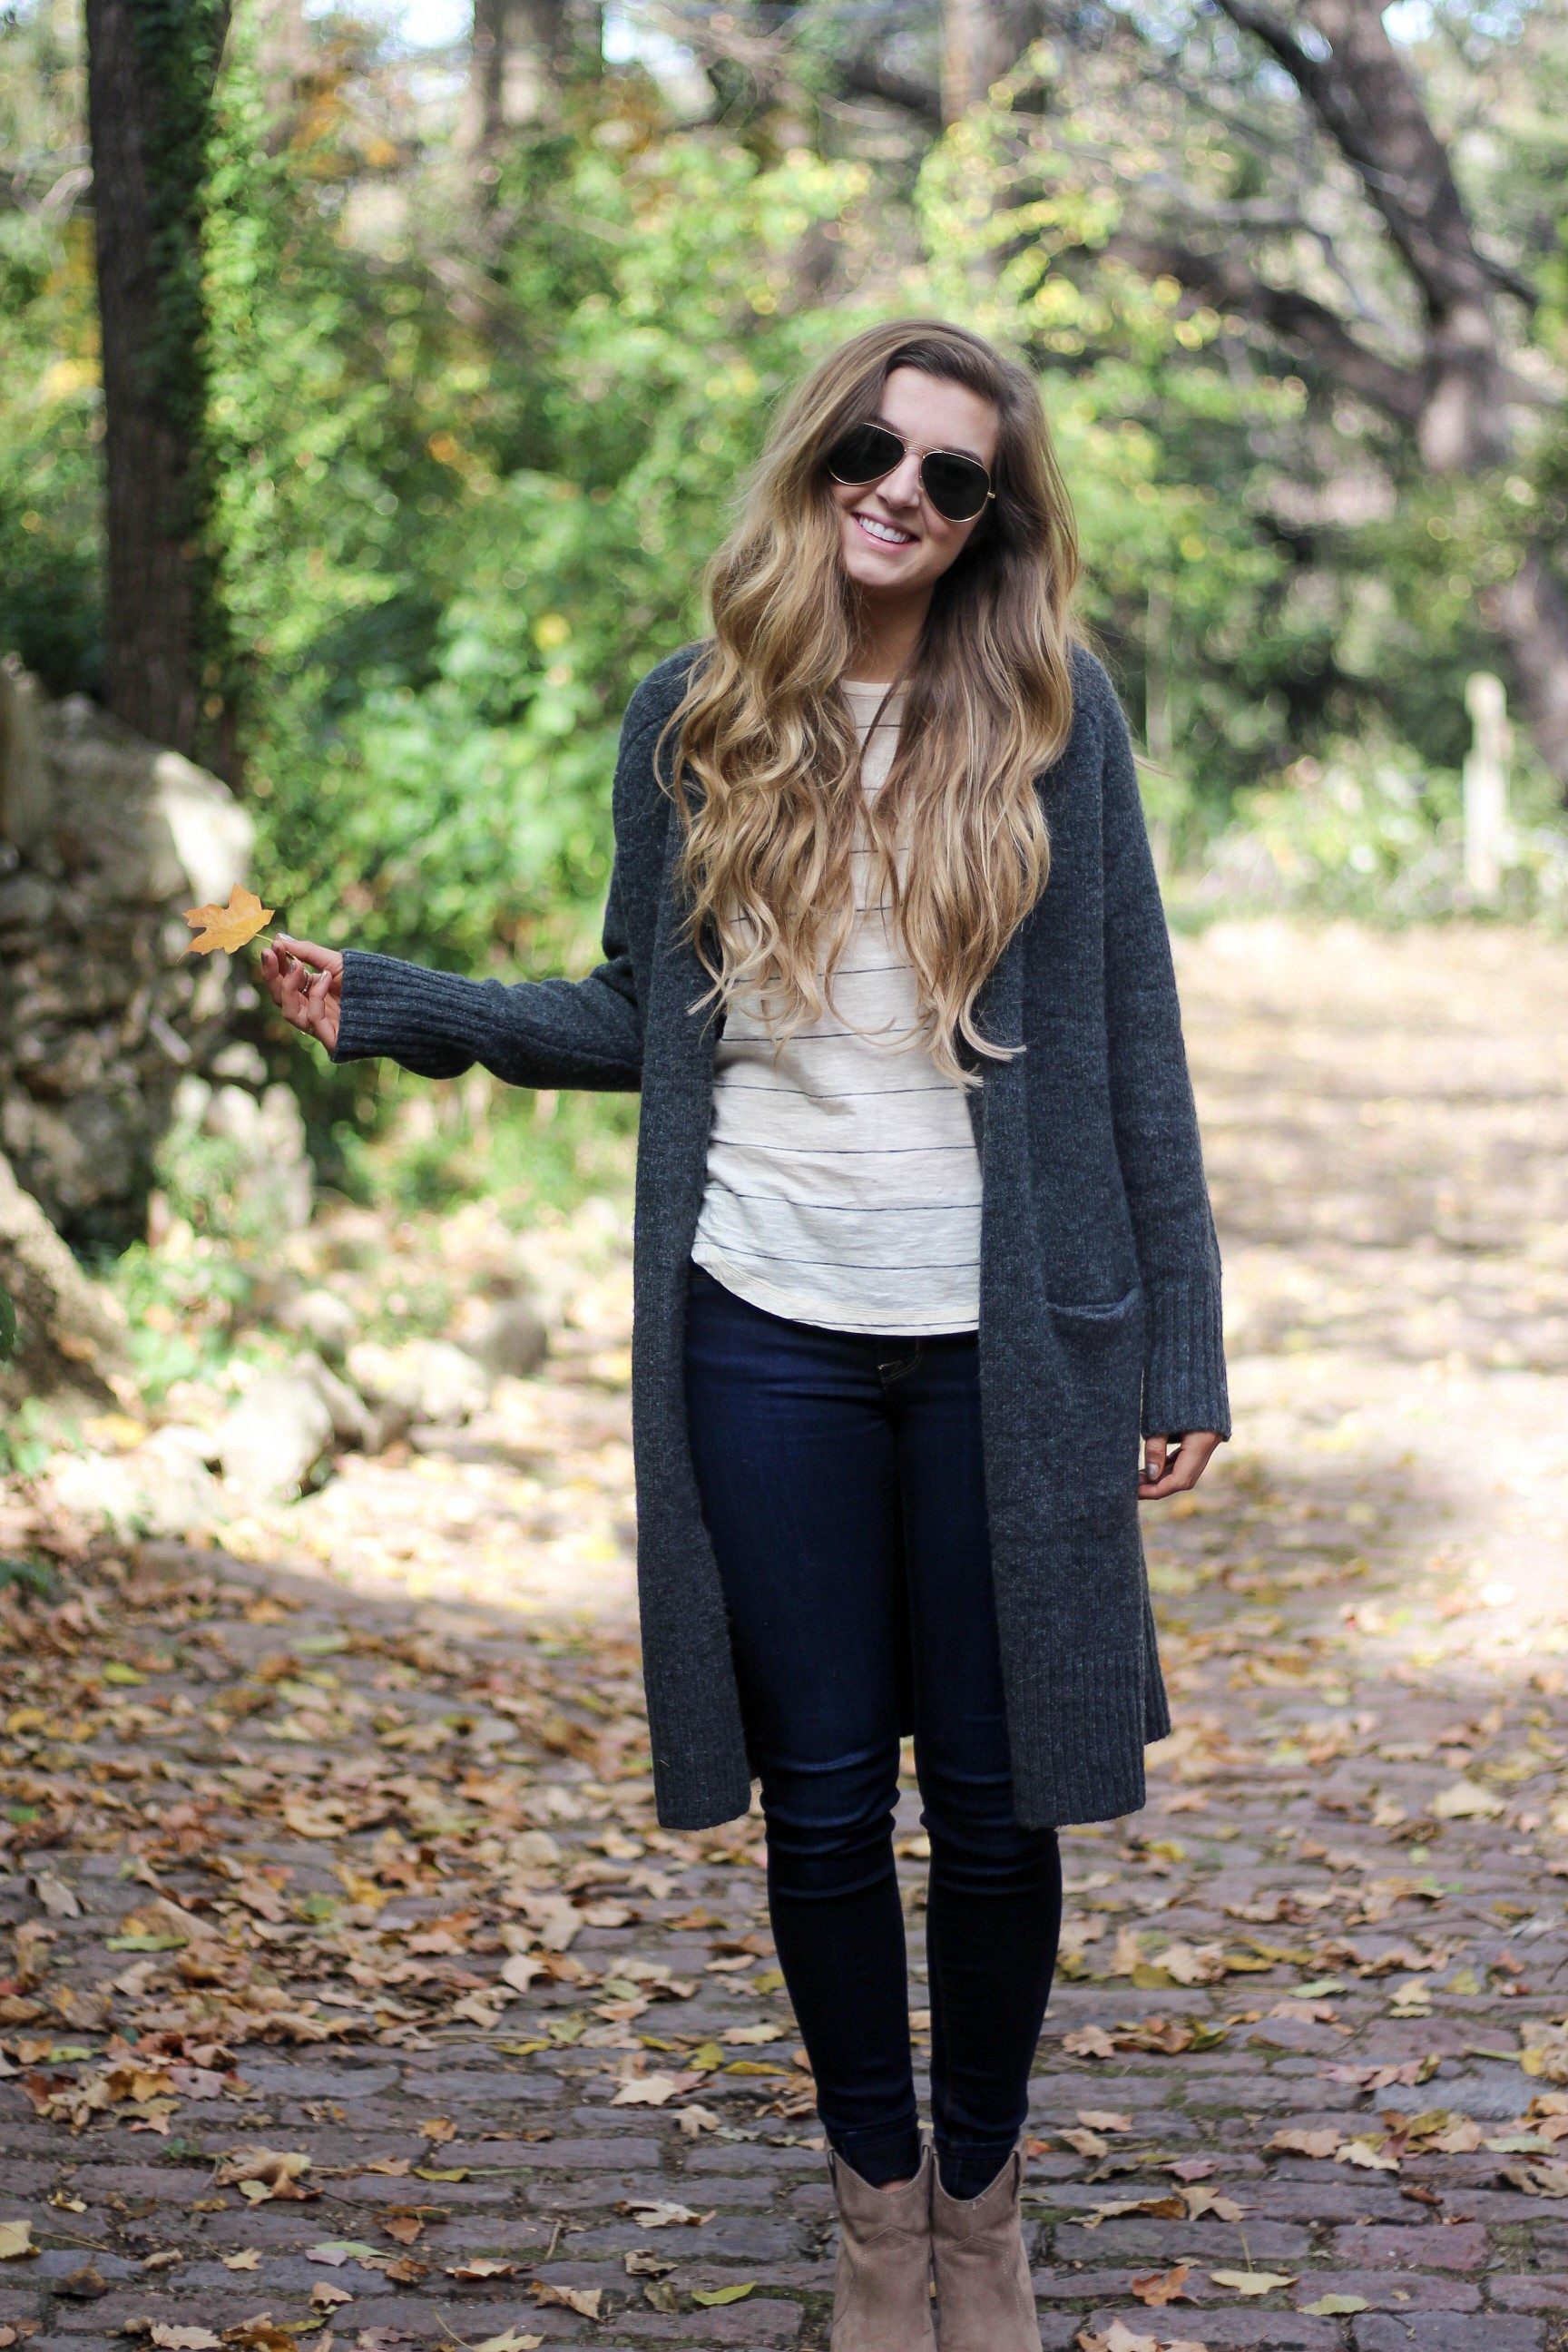 Long cardigan with striped shirt cute and simple outfit for fall! Perfectly paired with booties. The perfect fall or winter outfit by Lauren Lindmark on Daily Dose of Charm dailydoseofcharm.com